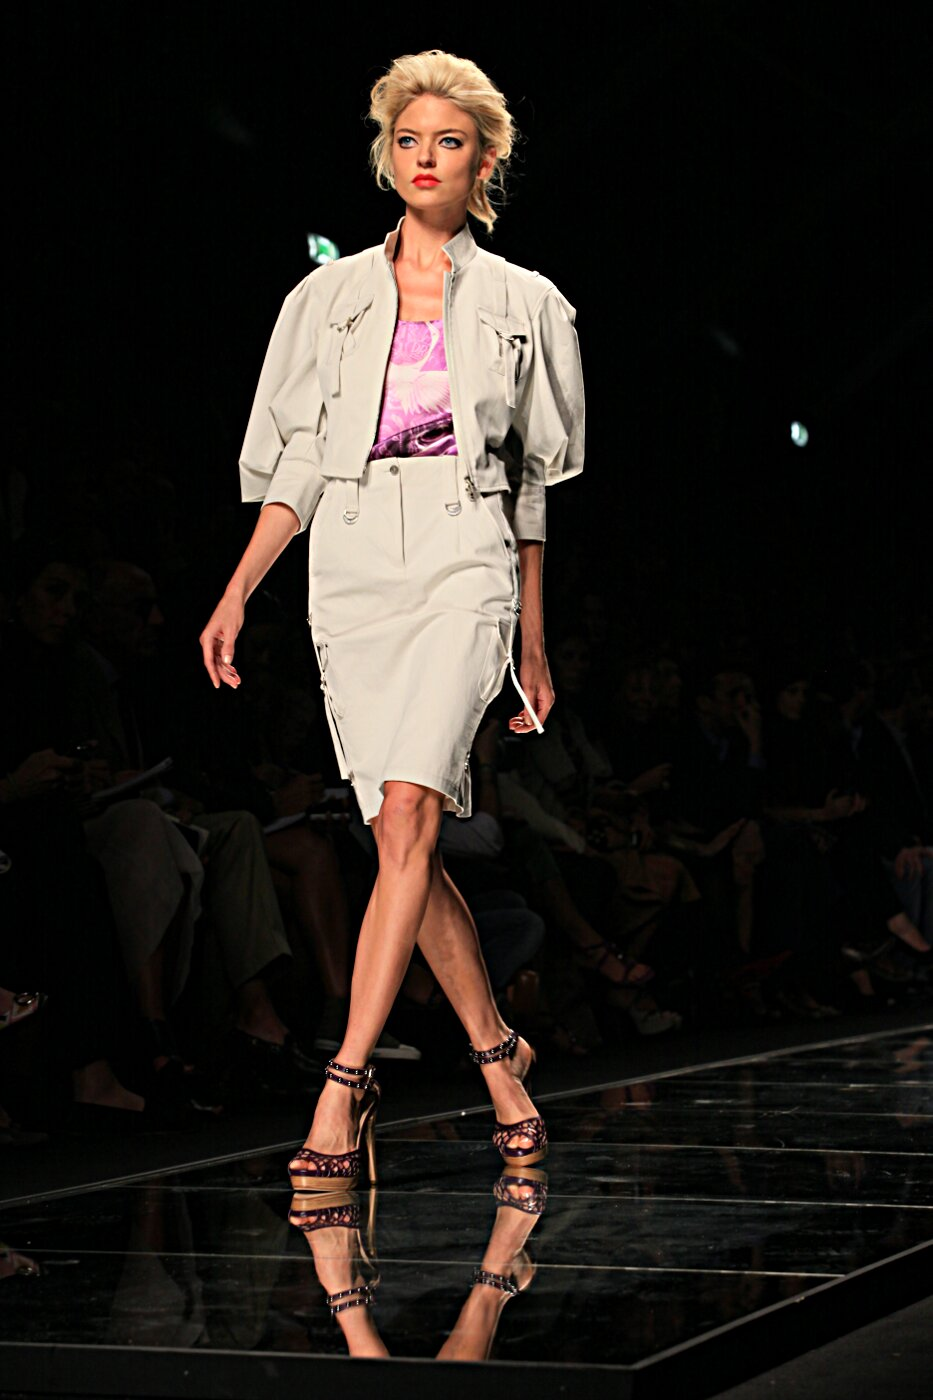 John Richmond S/S 2012 - Milano Fashion Week